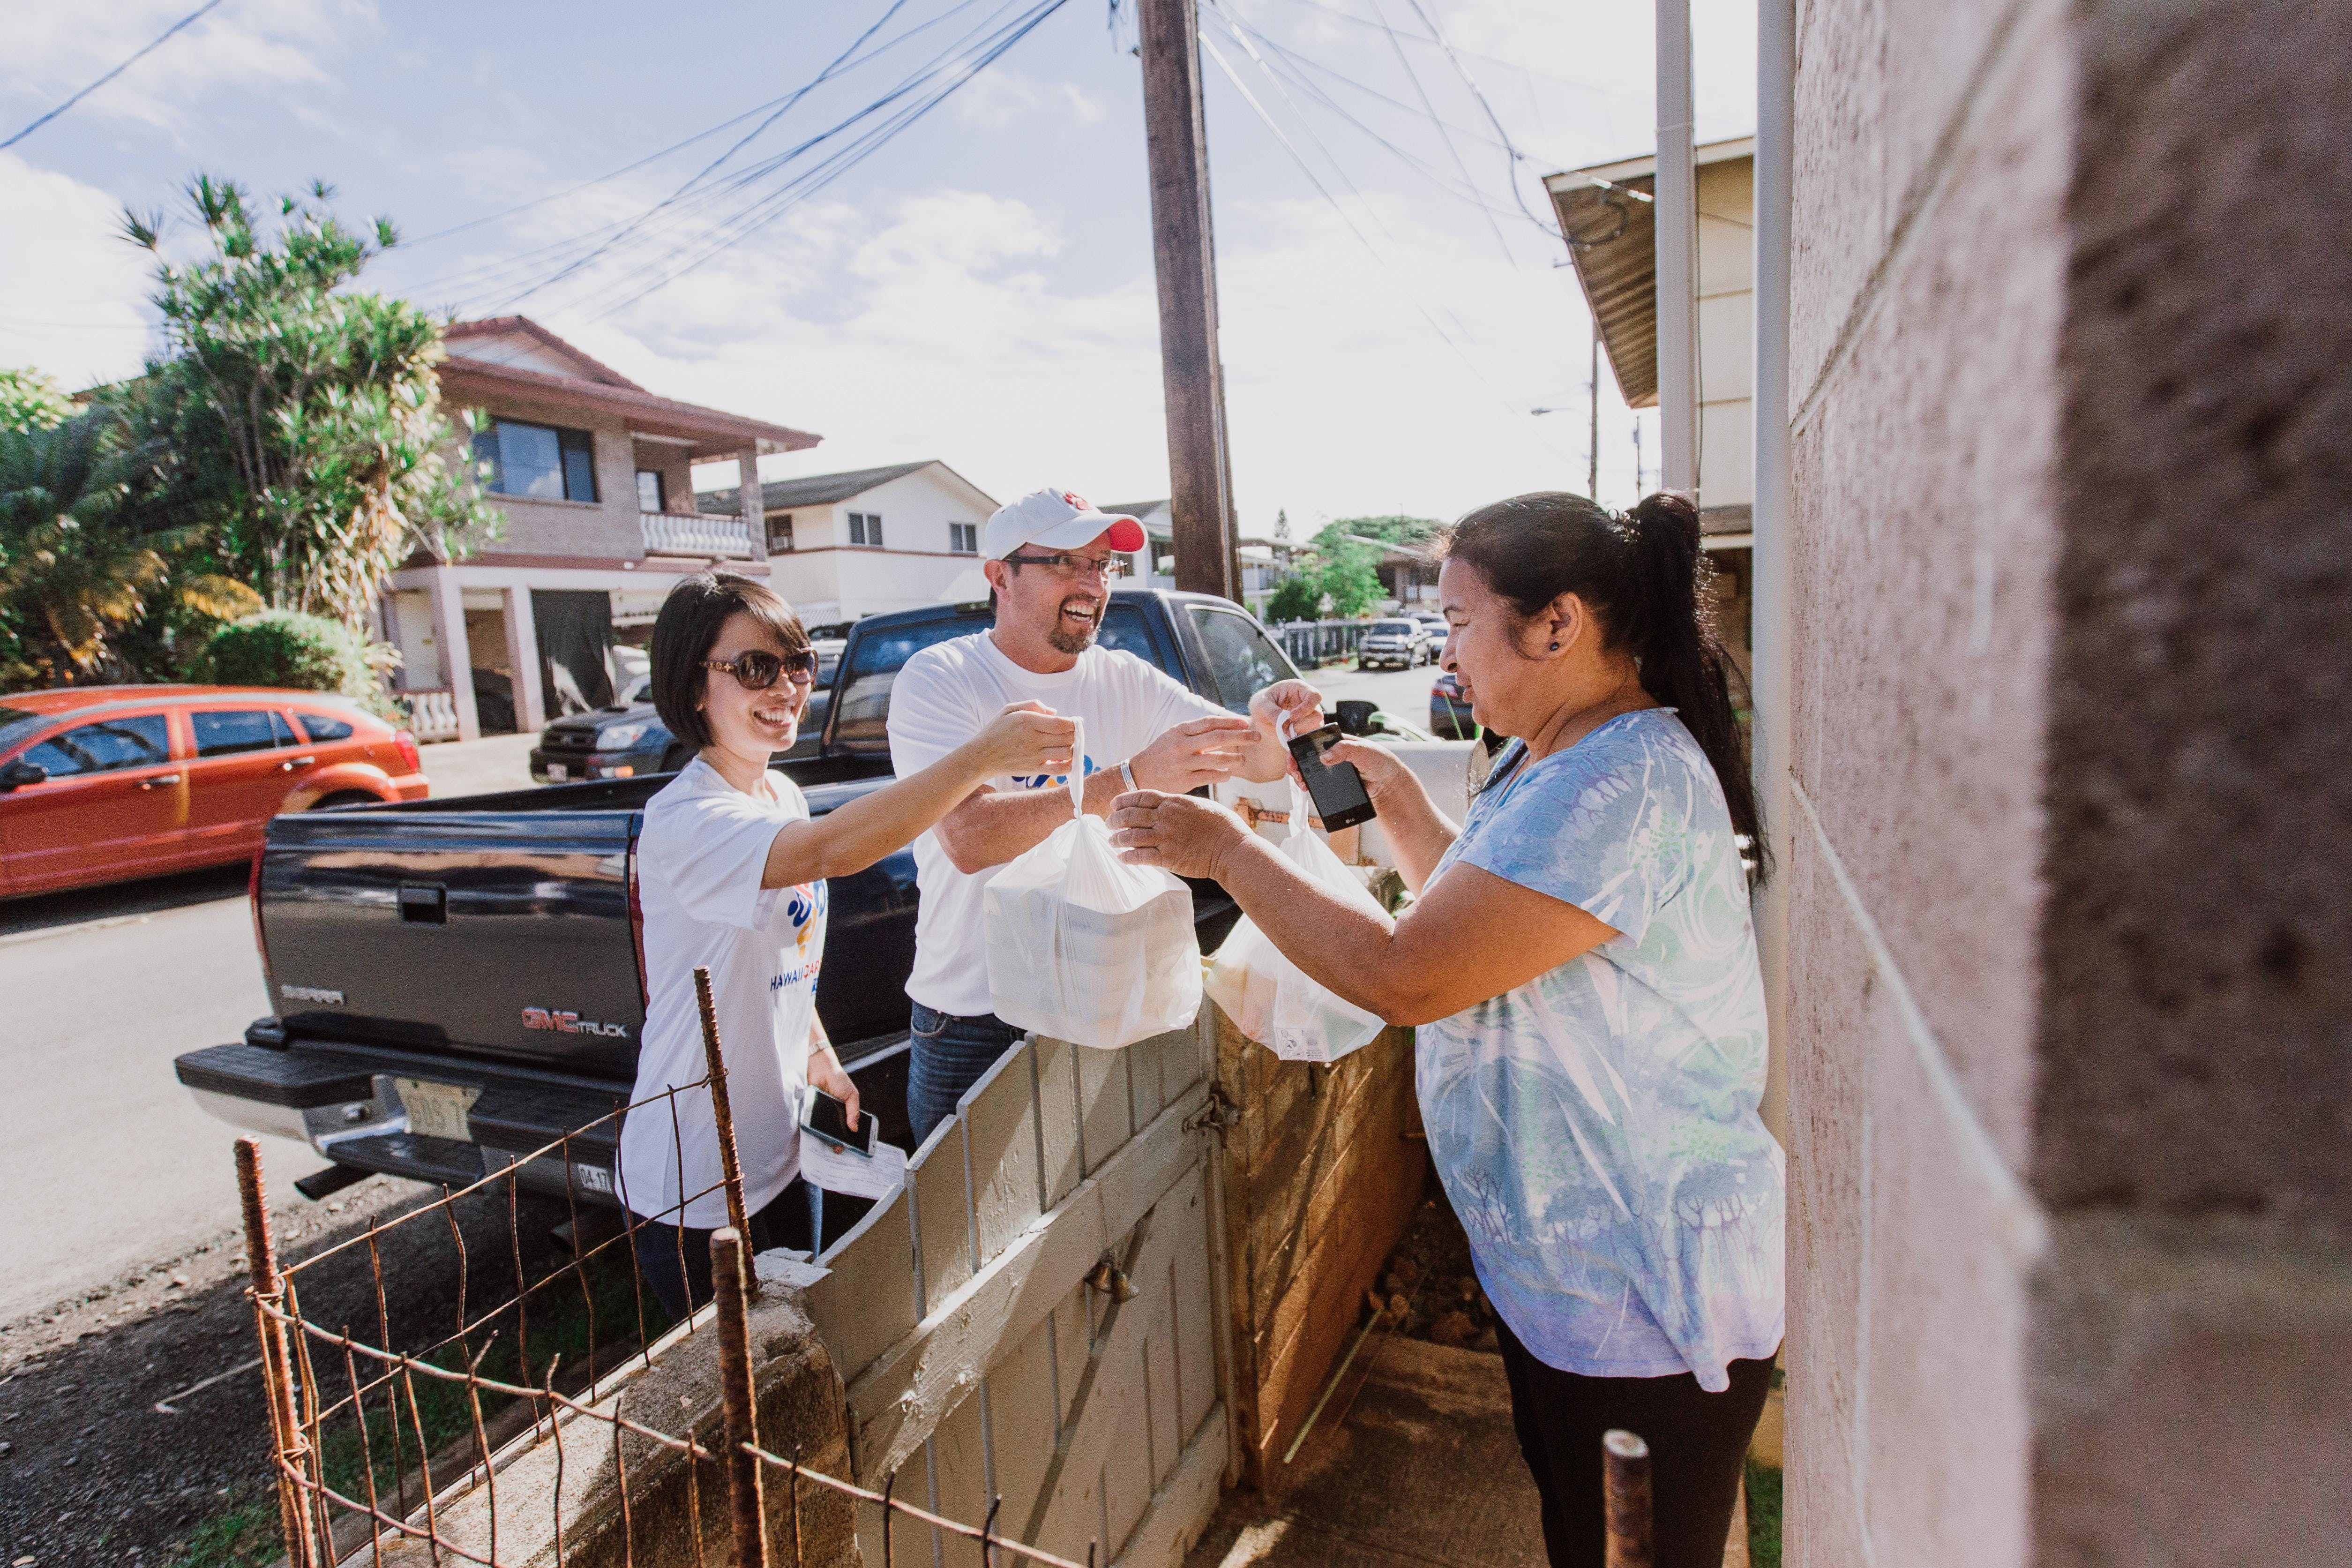 Hawaii Cares Day of Action Volunteer Opportun